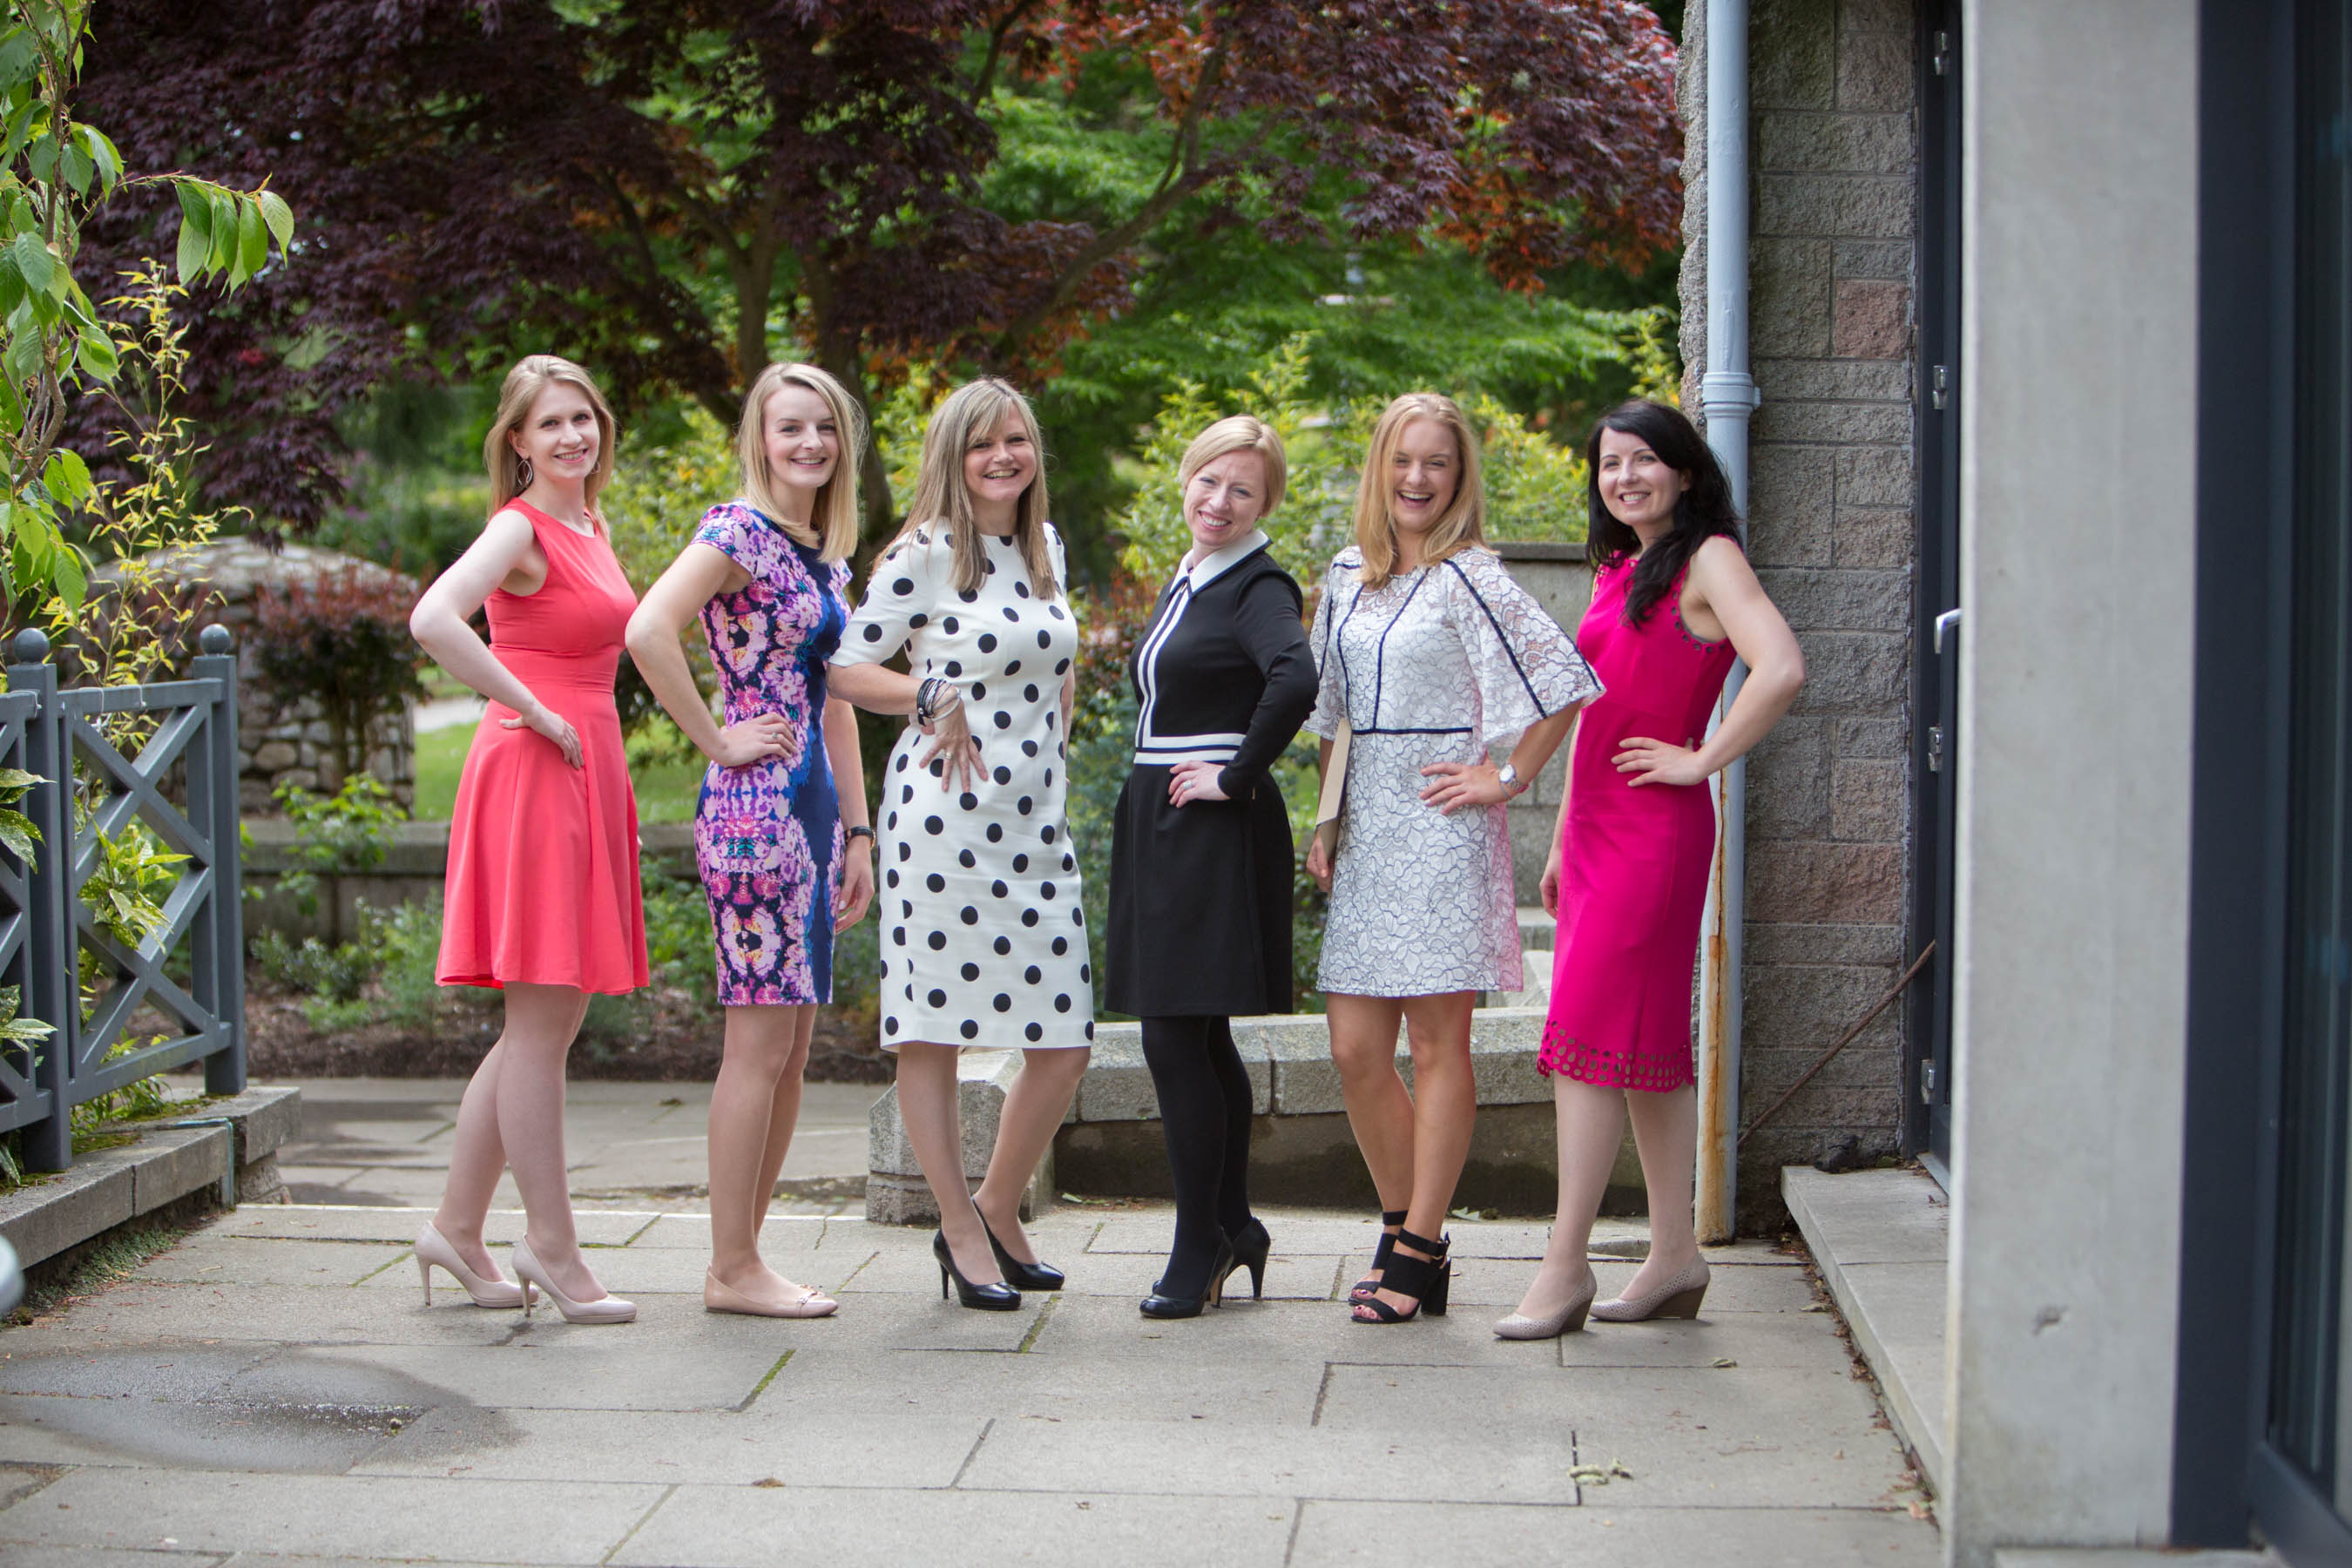 Ladies' afternoon tea party raises £10,000 for Friends of ANCHOR